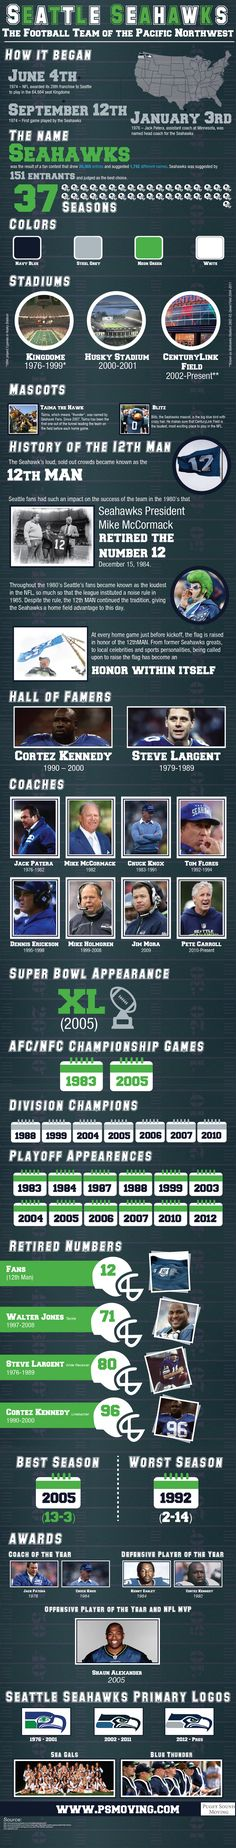 History of the Hawks - @Erin B Stockdill Seahawks #Infographic #FB